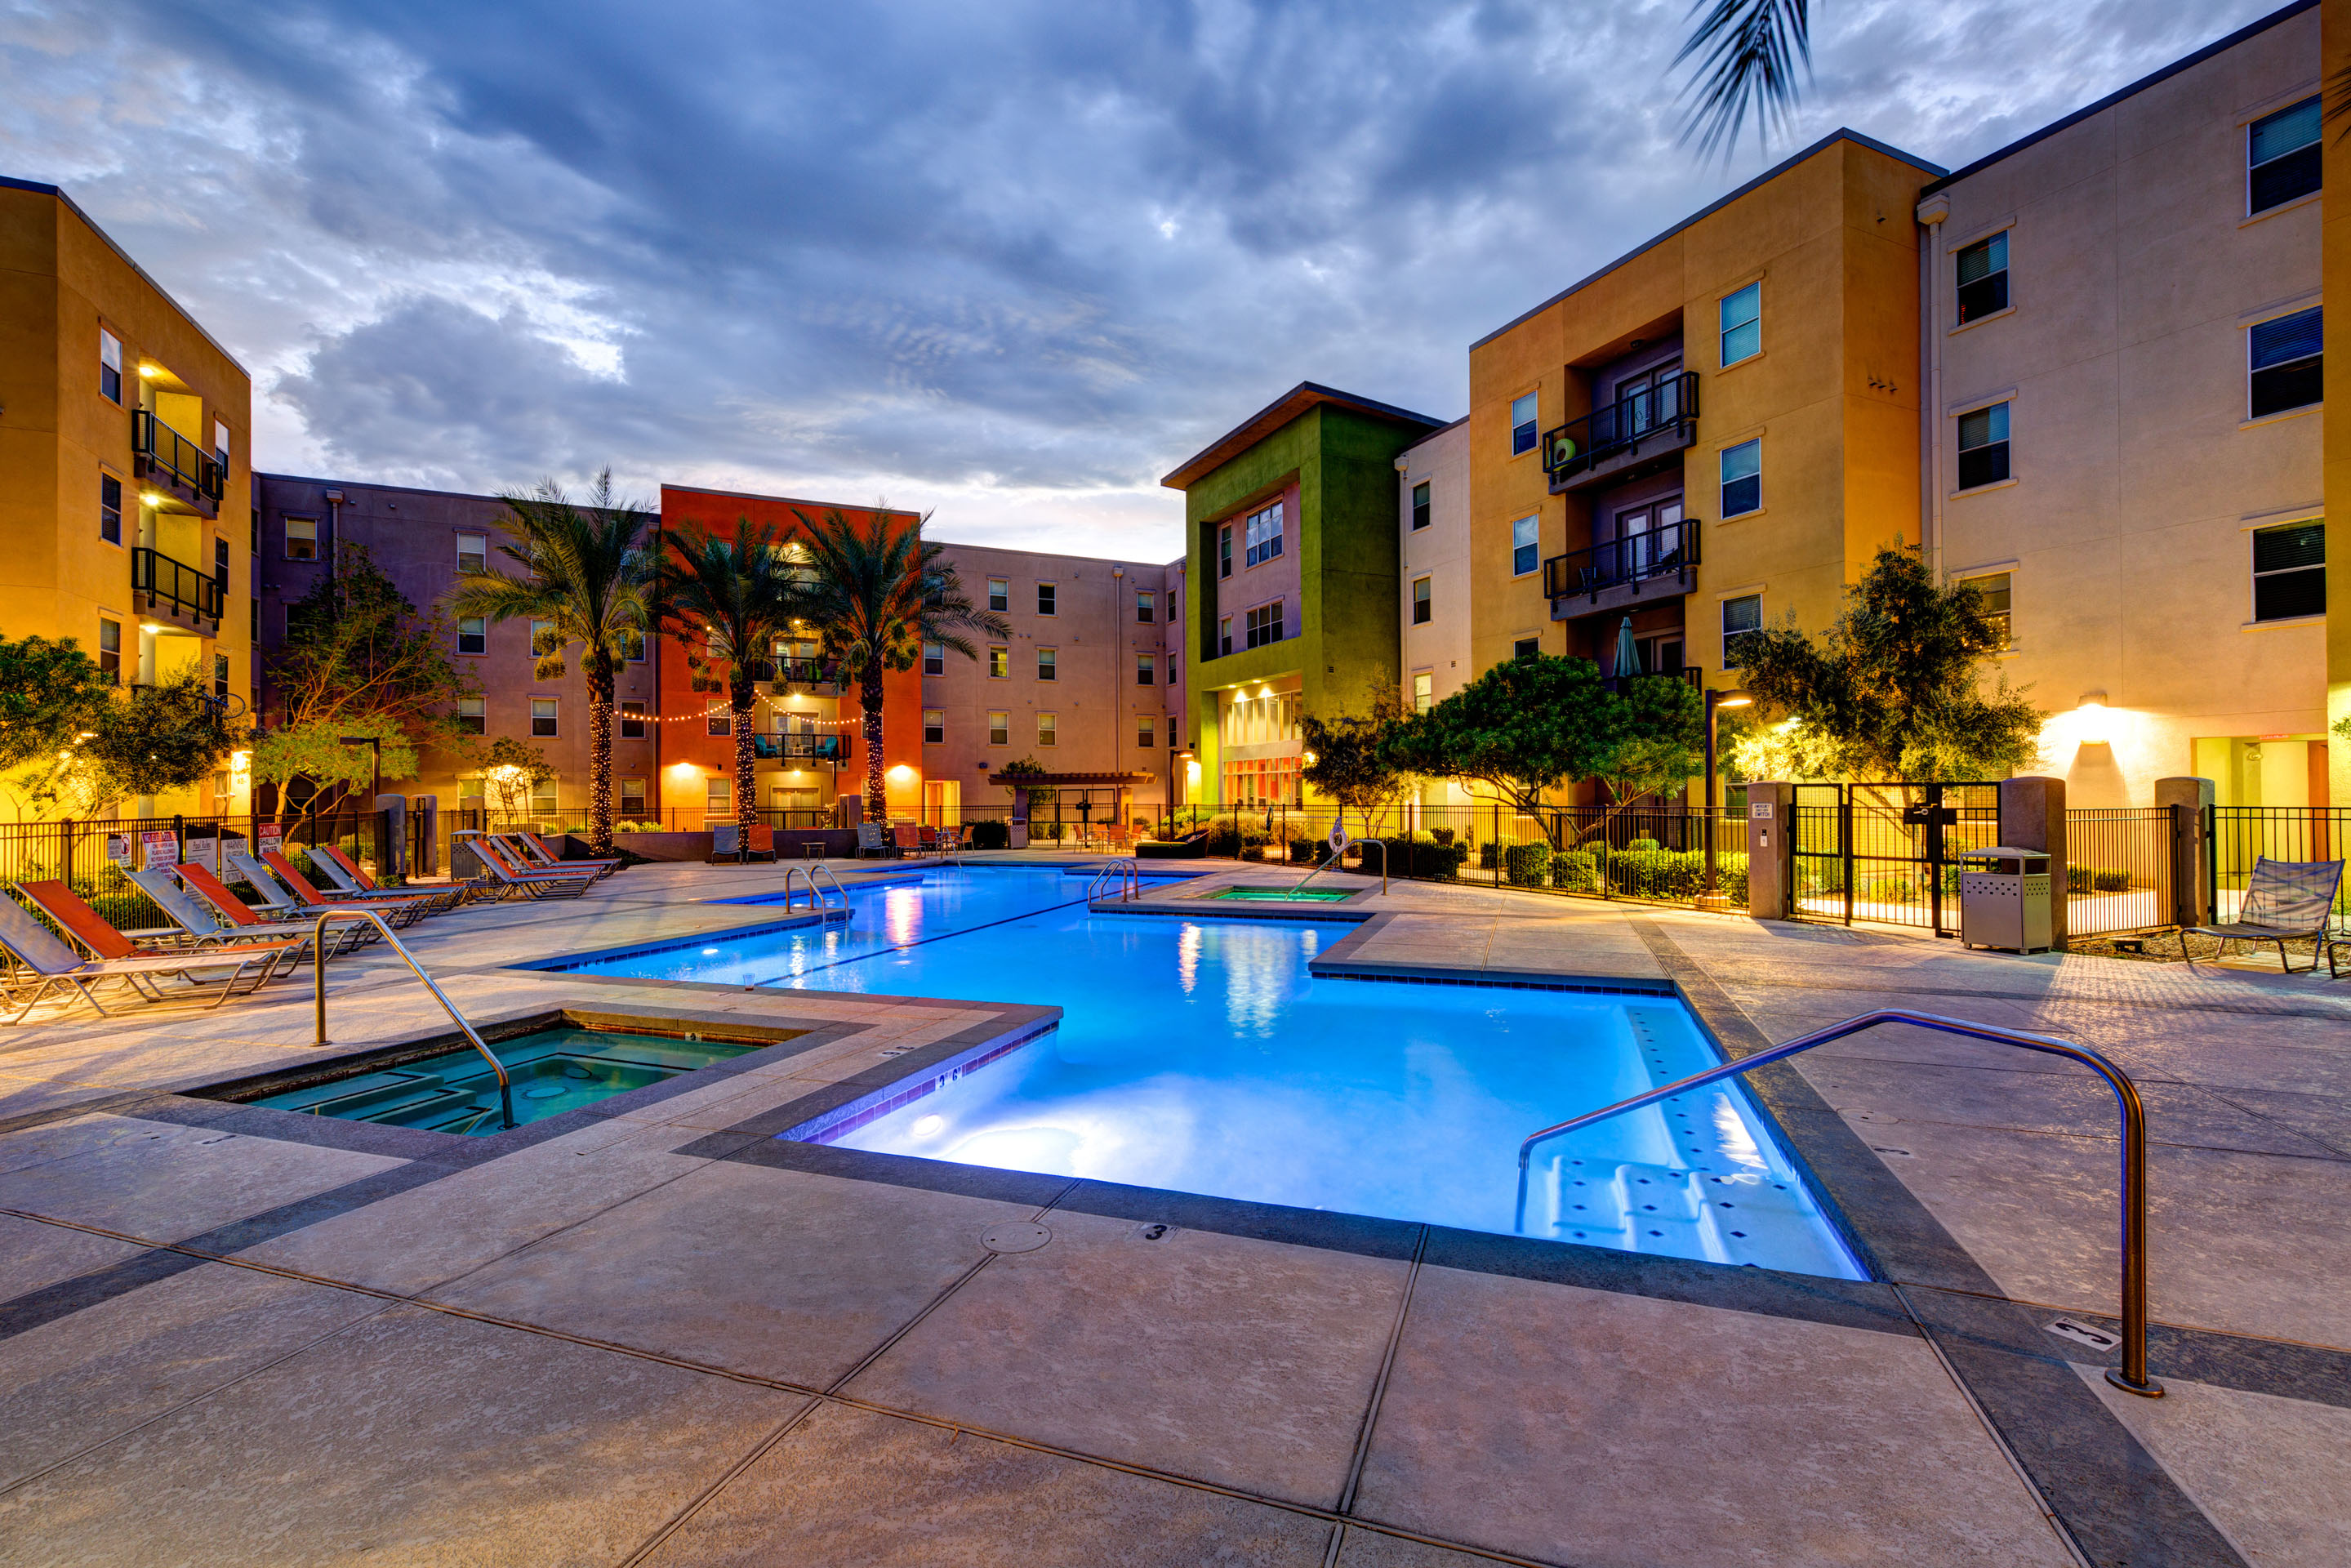 Preferred Apartment Communities Announces Agreement to Sell its Student Housing Portfolio to TPG Real Estate Partners for $478.7 Million